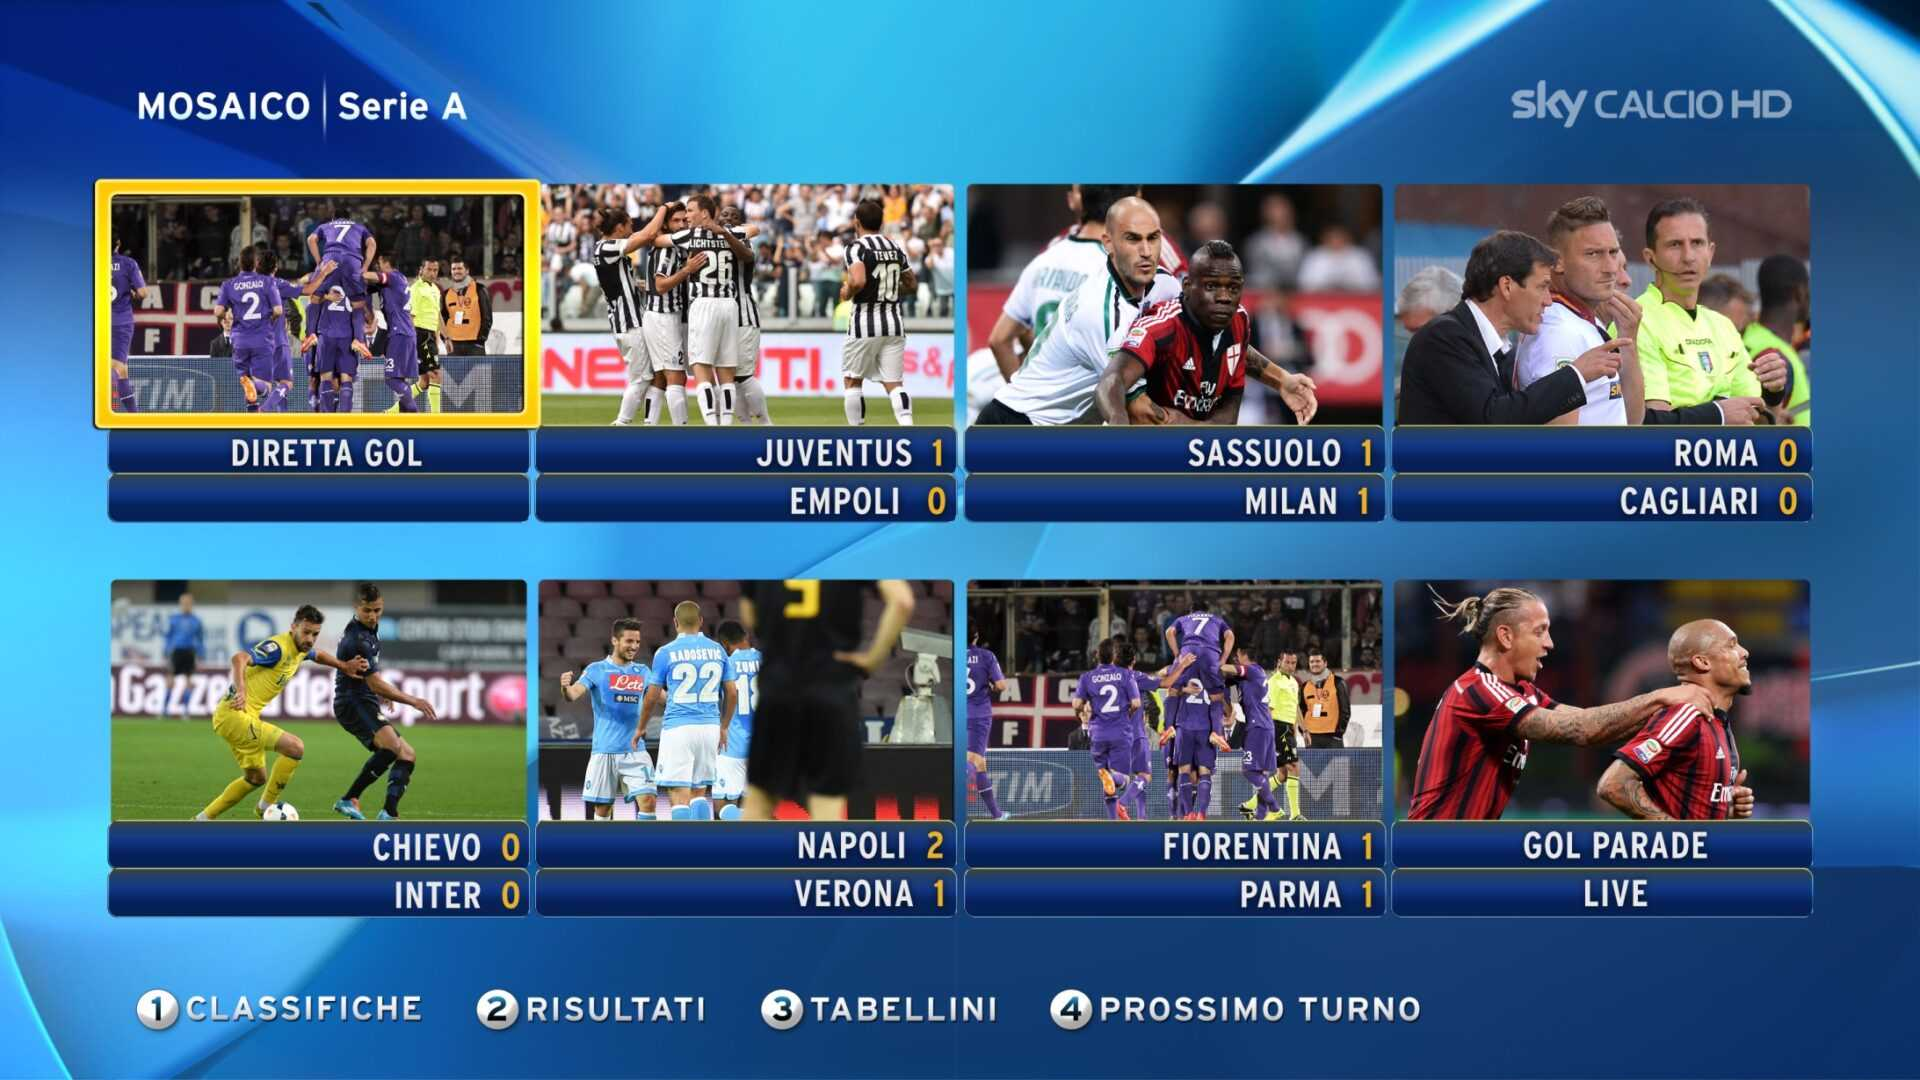 L'offerta calcio di Sky 2014 - 2015 in anteprima | Digitale terrestre: Dtti.it